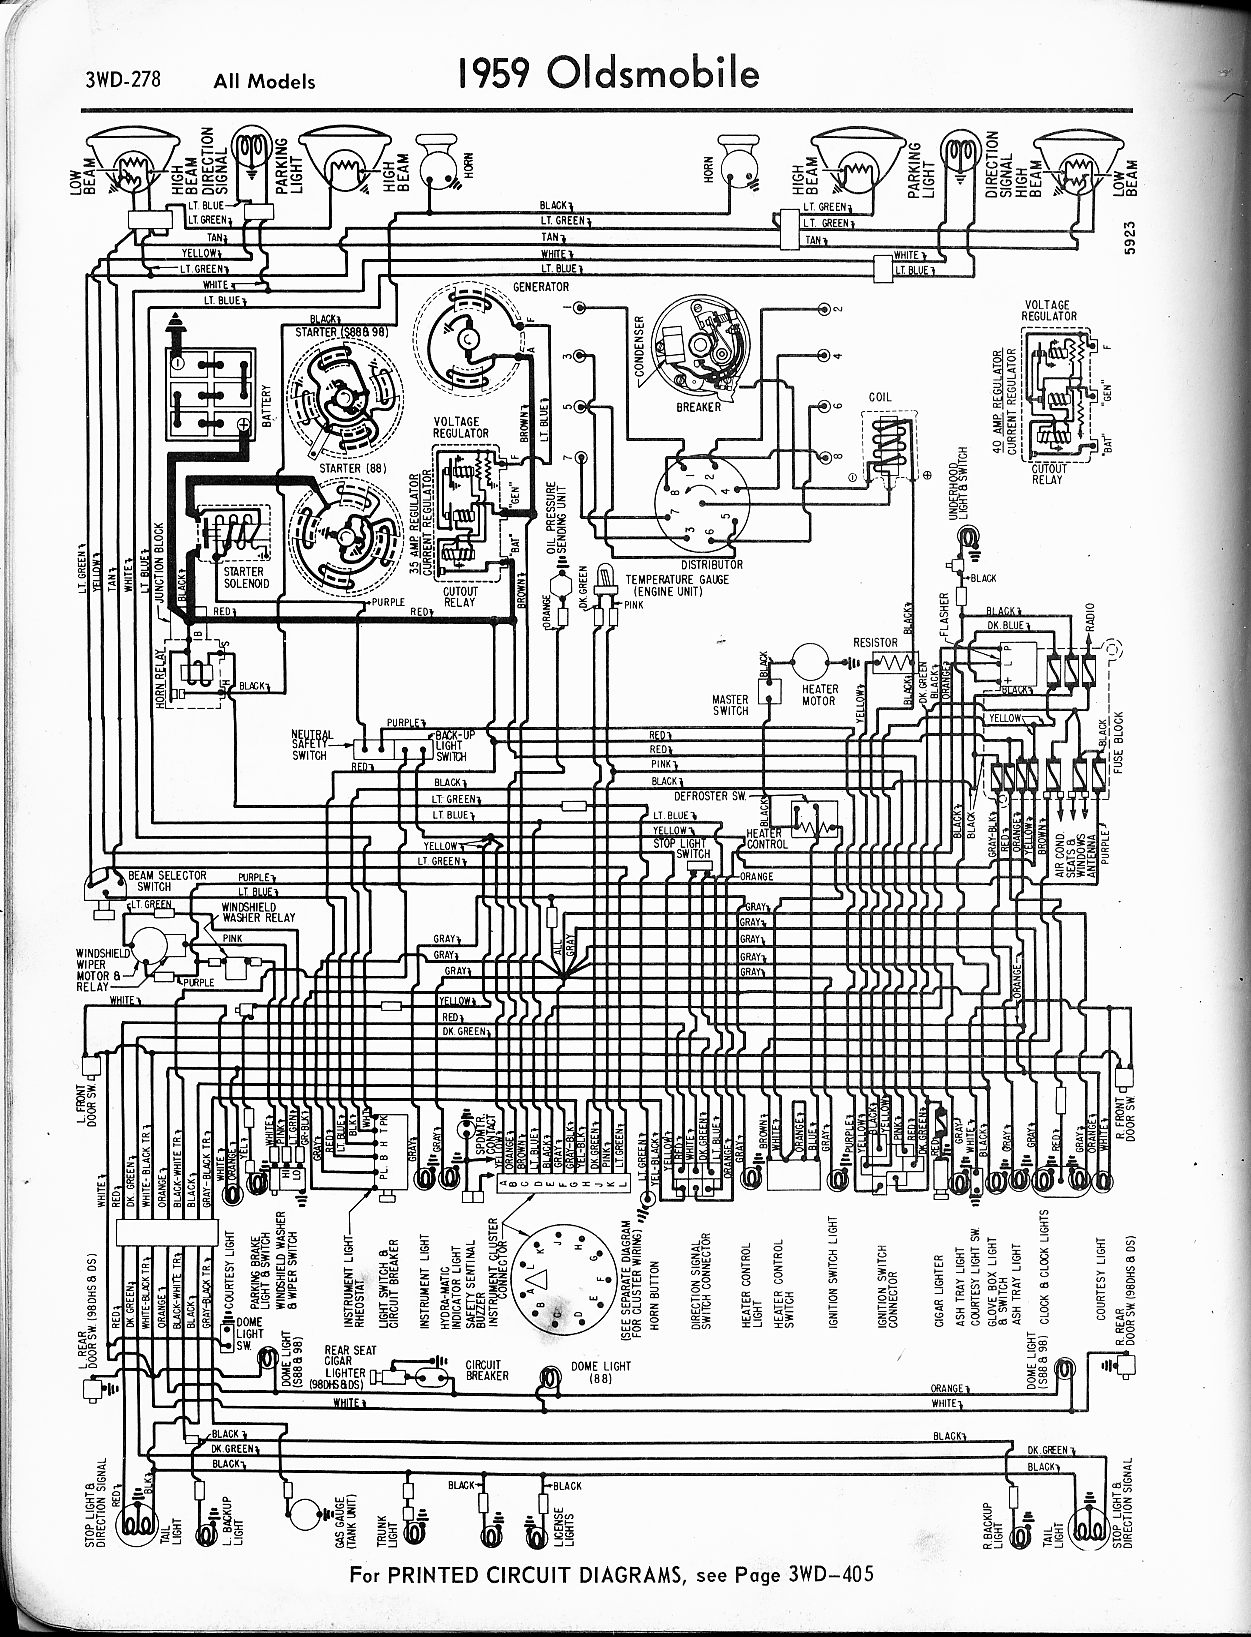 MWire5765 278 oldsmobile wiring diagrams the old car manual project Freightliner Power Window Wiring Diagram at alyssarenee.co